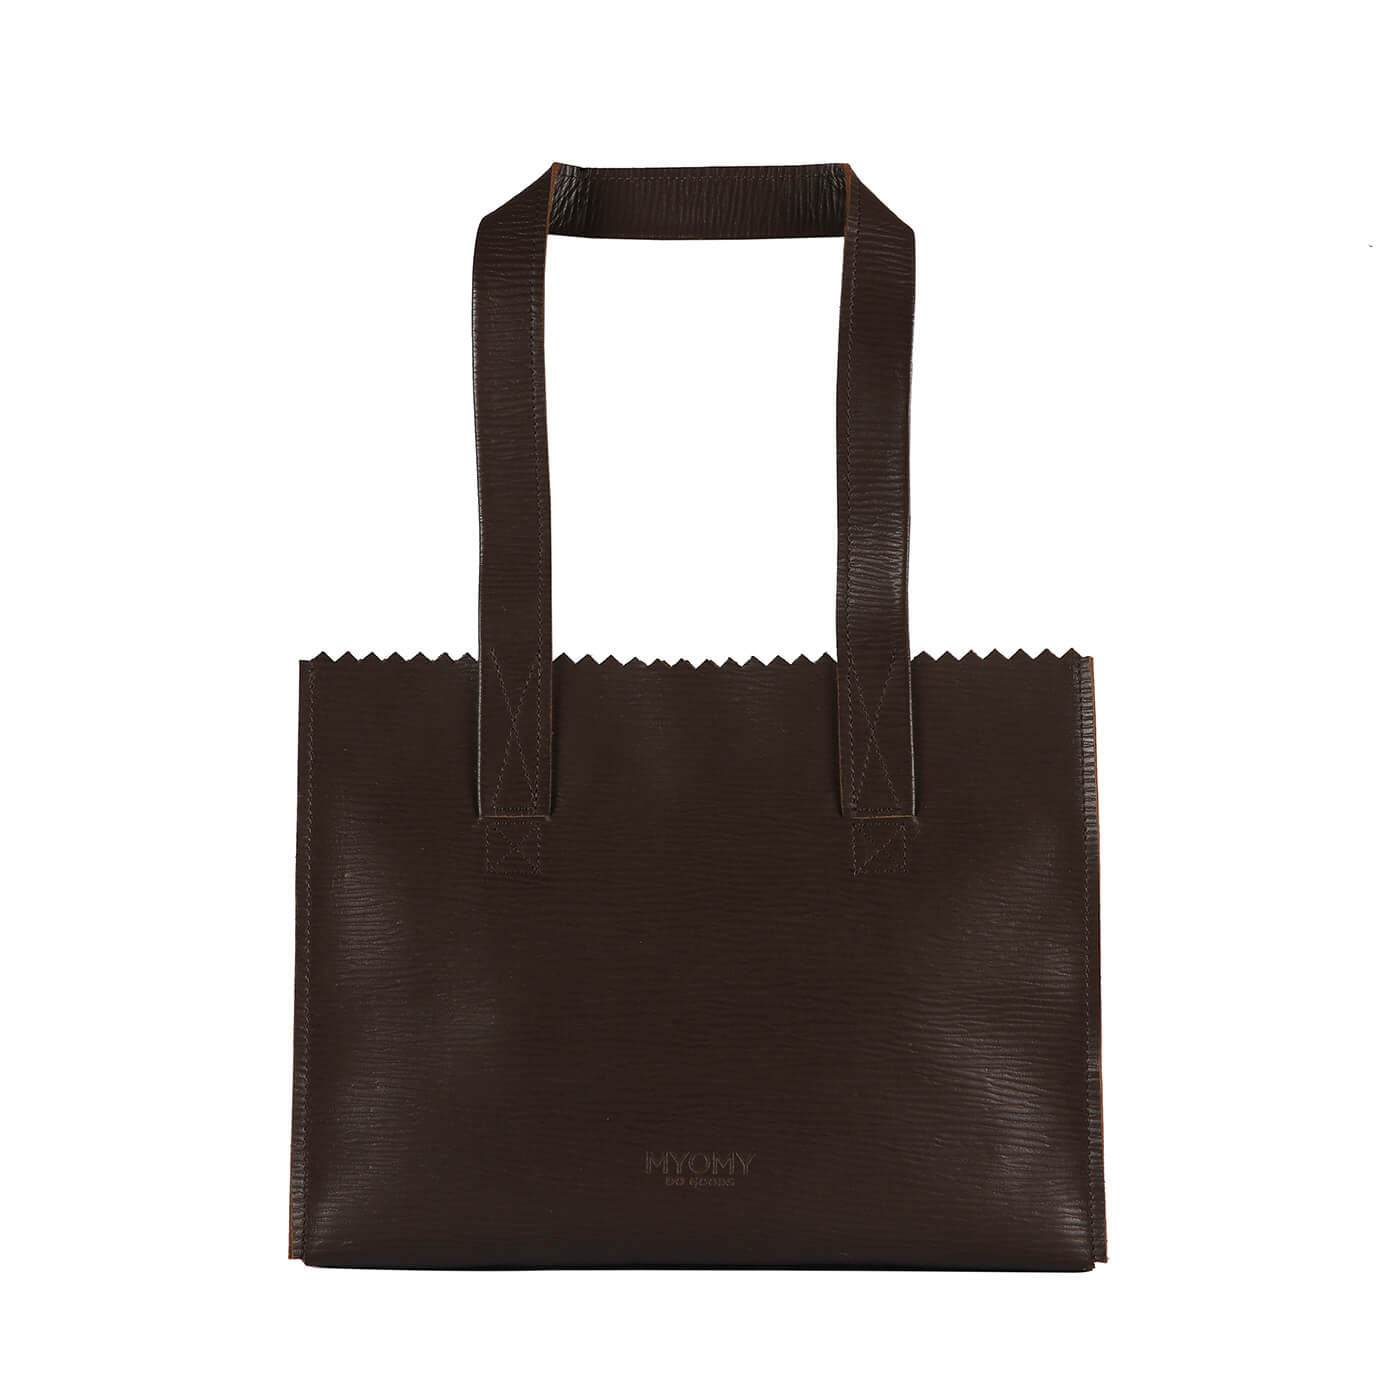 [PRE-ORDER] MY PAPER BAG Handbag – boarded dark brown